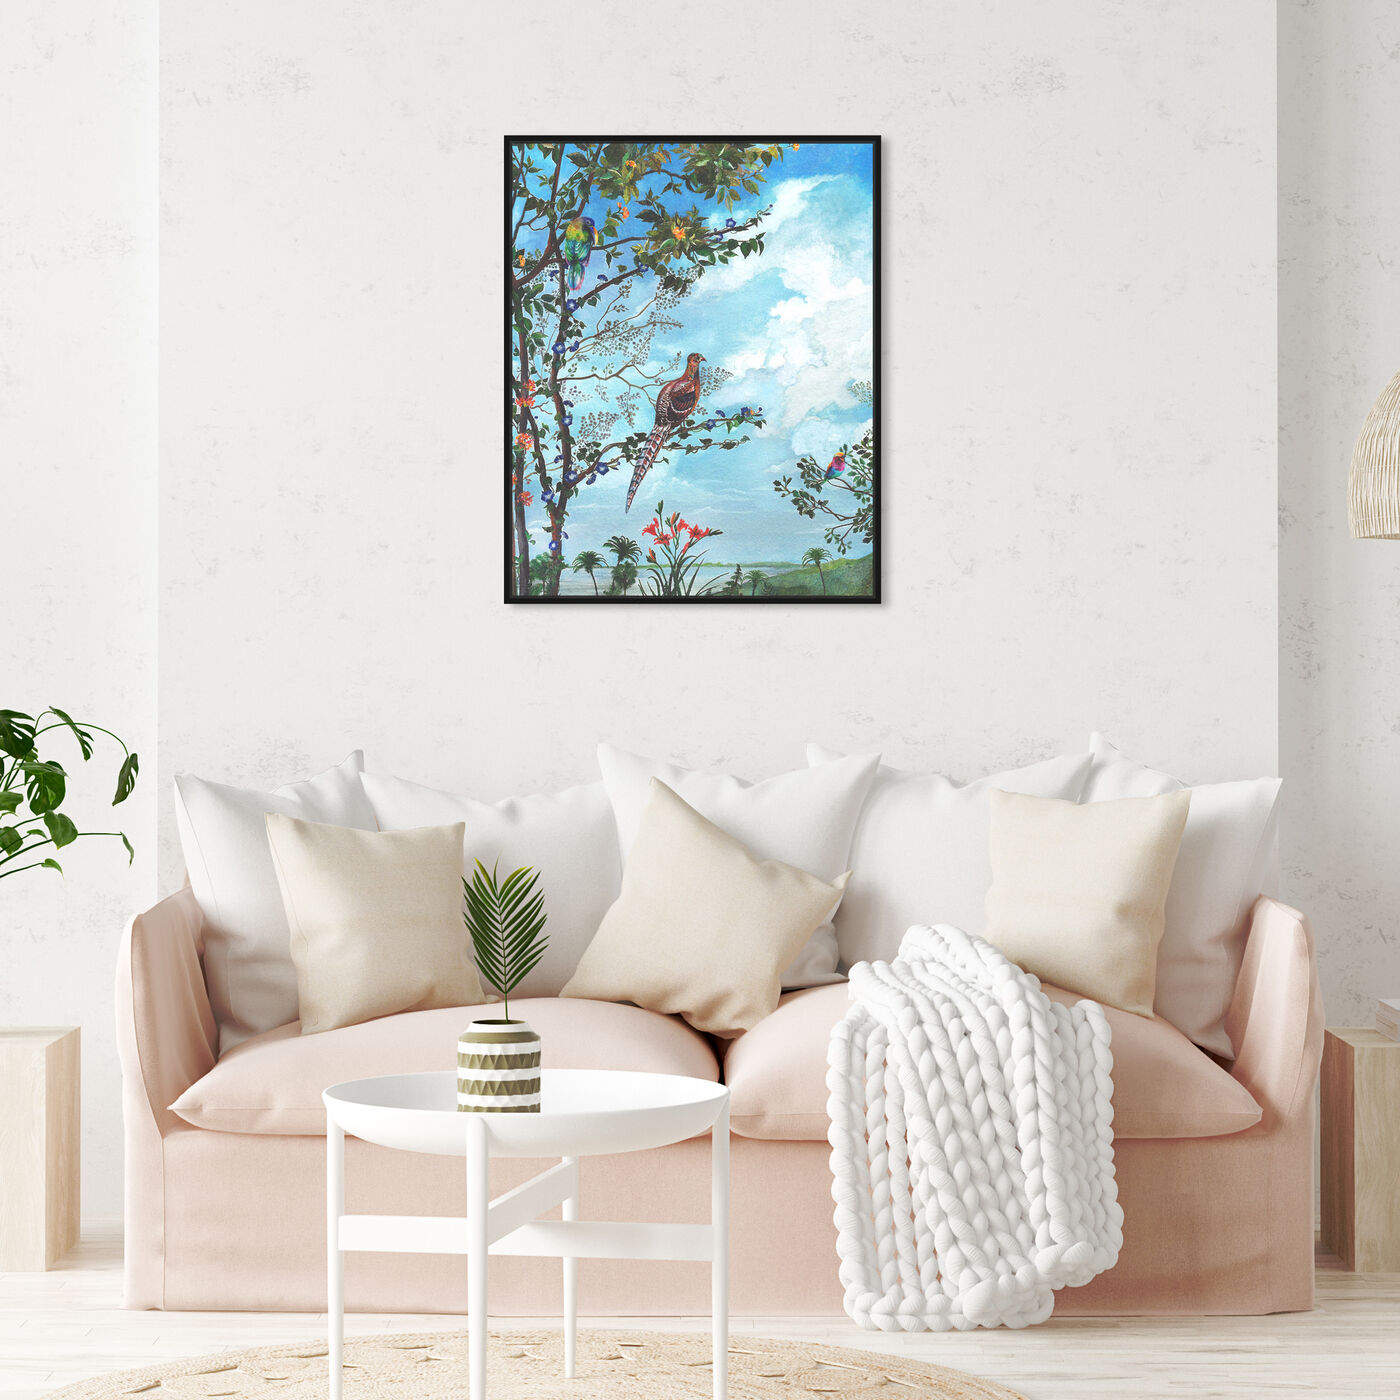 Hanging view of Peaceful Moment Birds featuring animals and birds art.